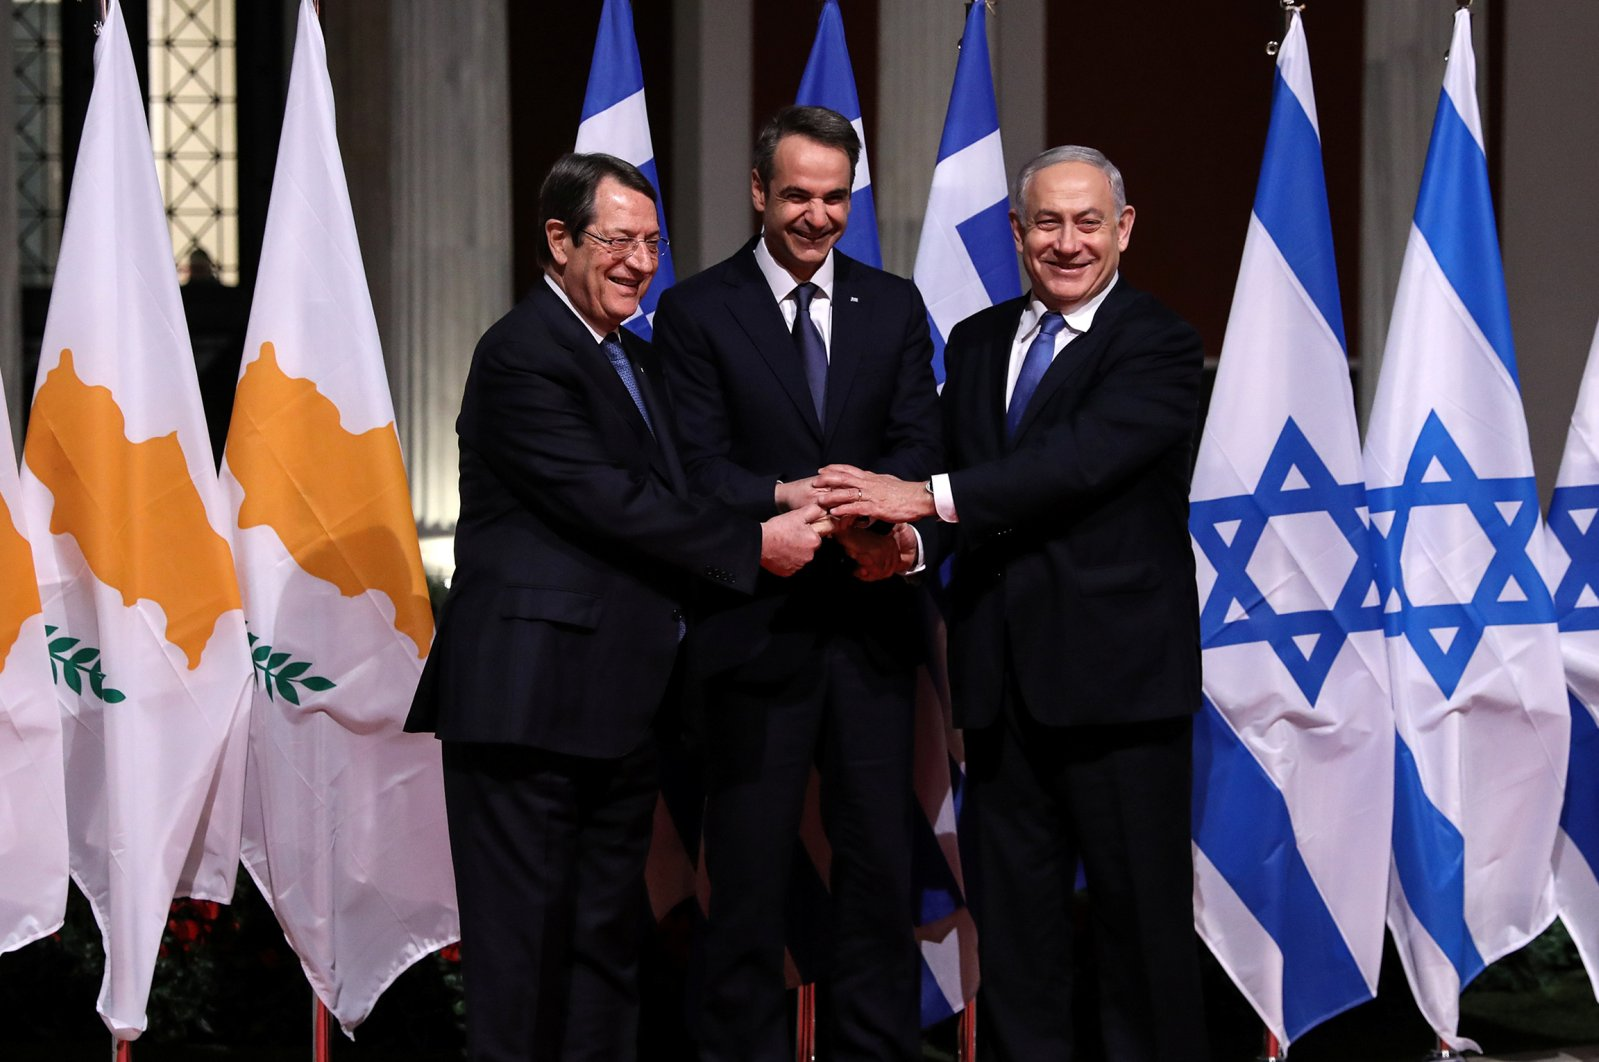 Greek Cypriot leader Nicos Anastasiades, Greek Prime Minister Kyriakos Mitsotakis and Israeli Prime Minister Benjamin Netanyahu pose for a photo before signing a deal to build the EastMed subsea pipeline to carry natural gas from the Eastern Mediterranean to Europe, at the Zappeion Hall in Athens, Greece, Jan. 2, 2020. (Reuters Photo)